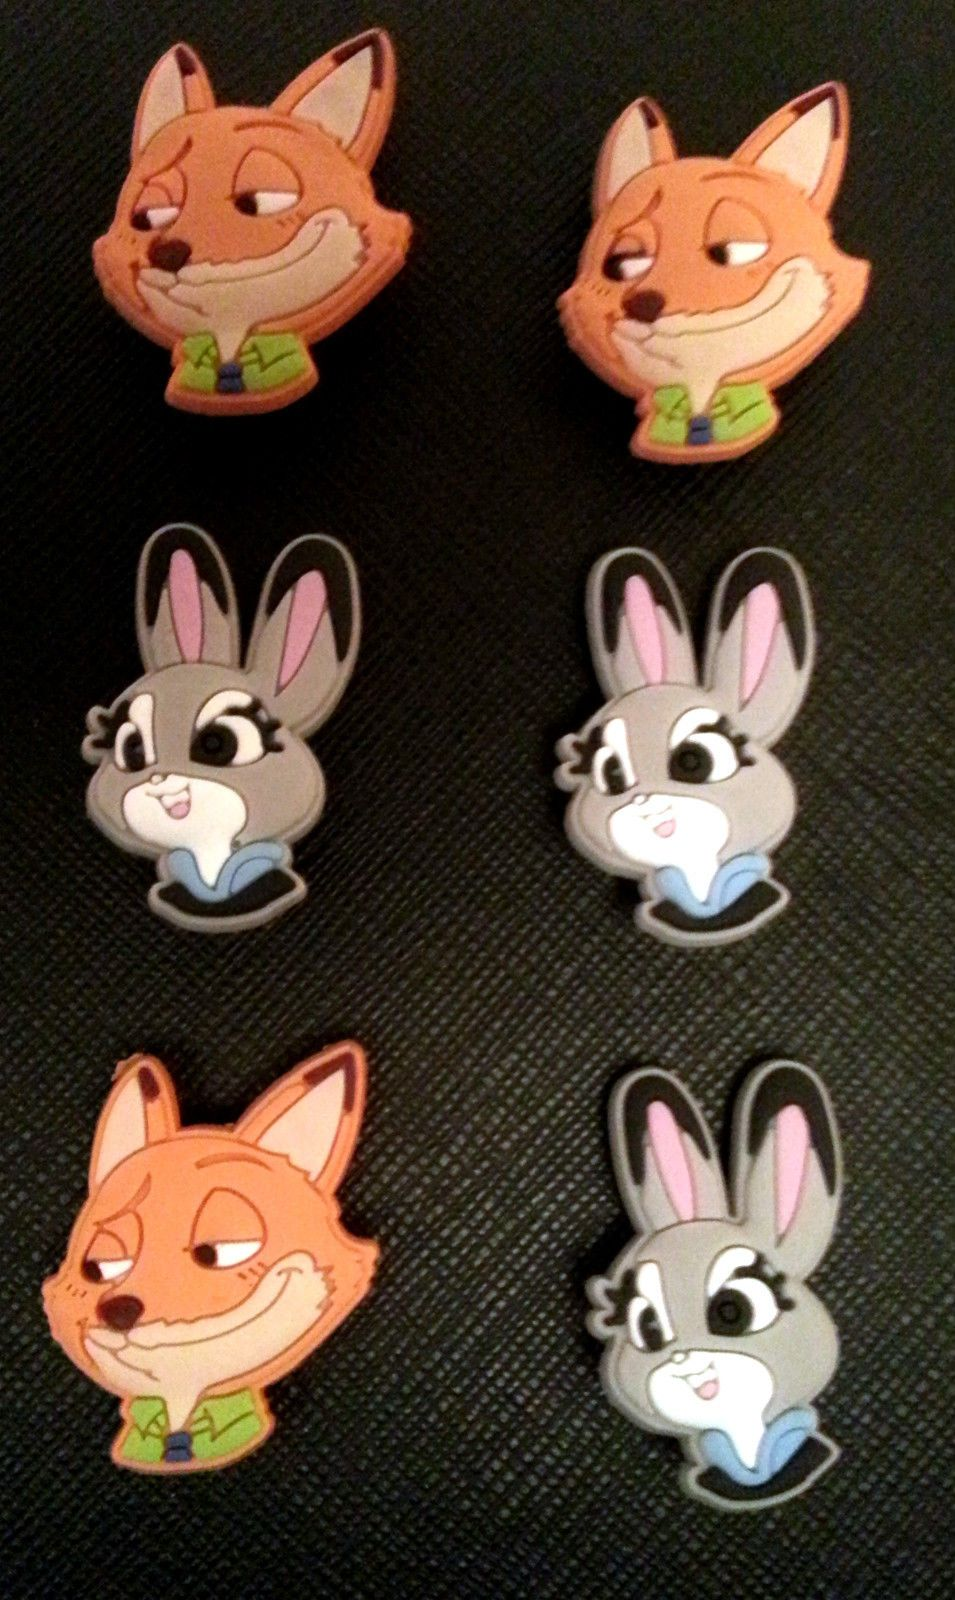 c05dfb699a3 Zootopia Croc Shoe Charms Jibbitz Wristbands Crocs Nick Wilde Judy Hopps.  Find this Pin and ...